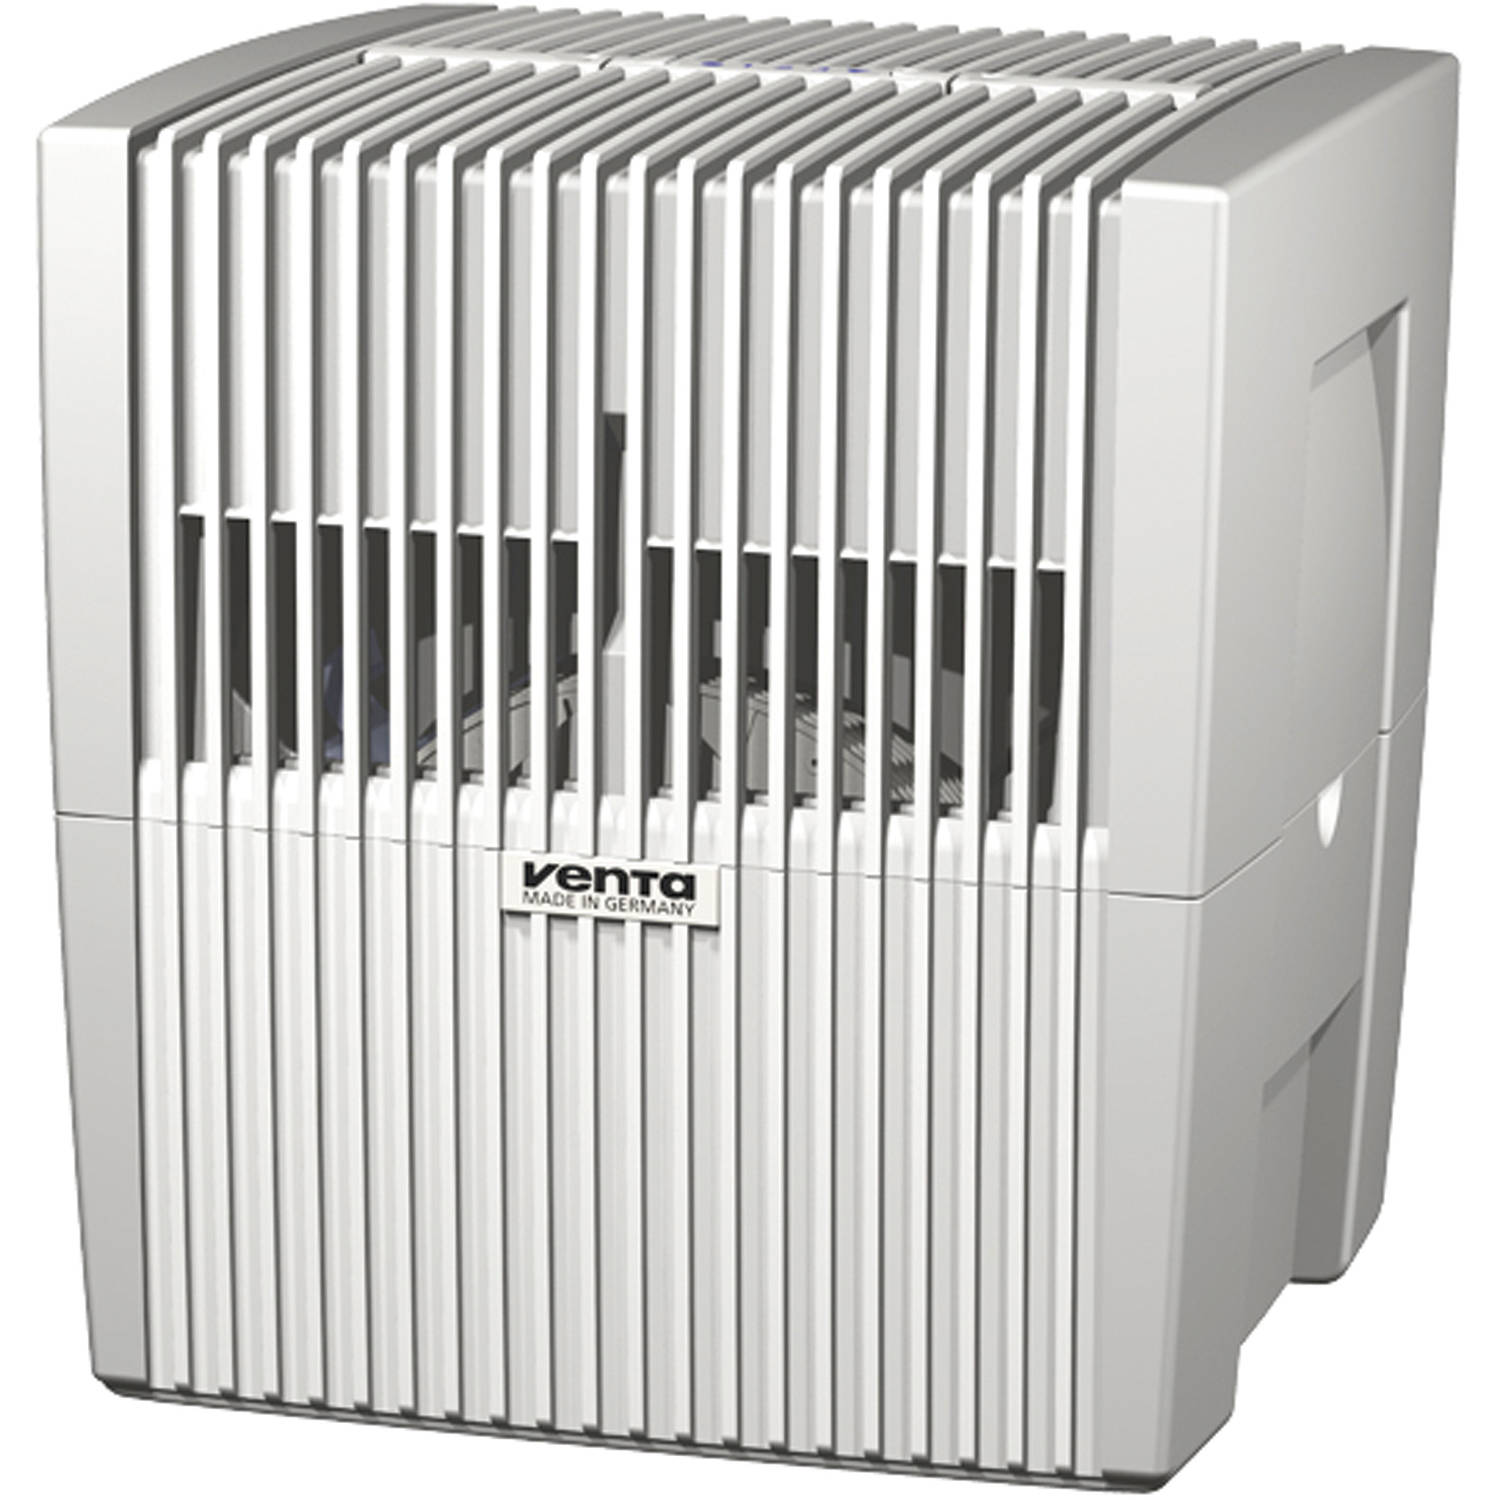 Venta LW25 2-in-1 Humidifier and Air Purifier for Life, White